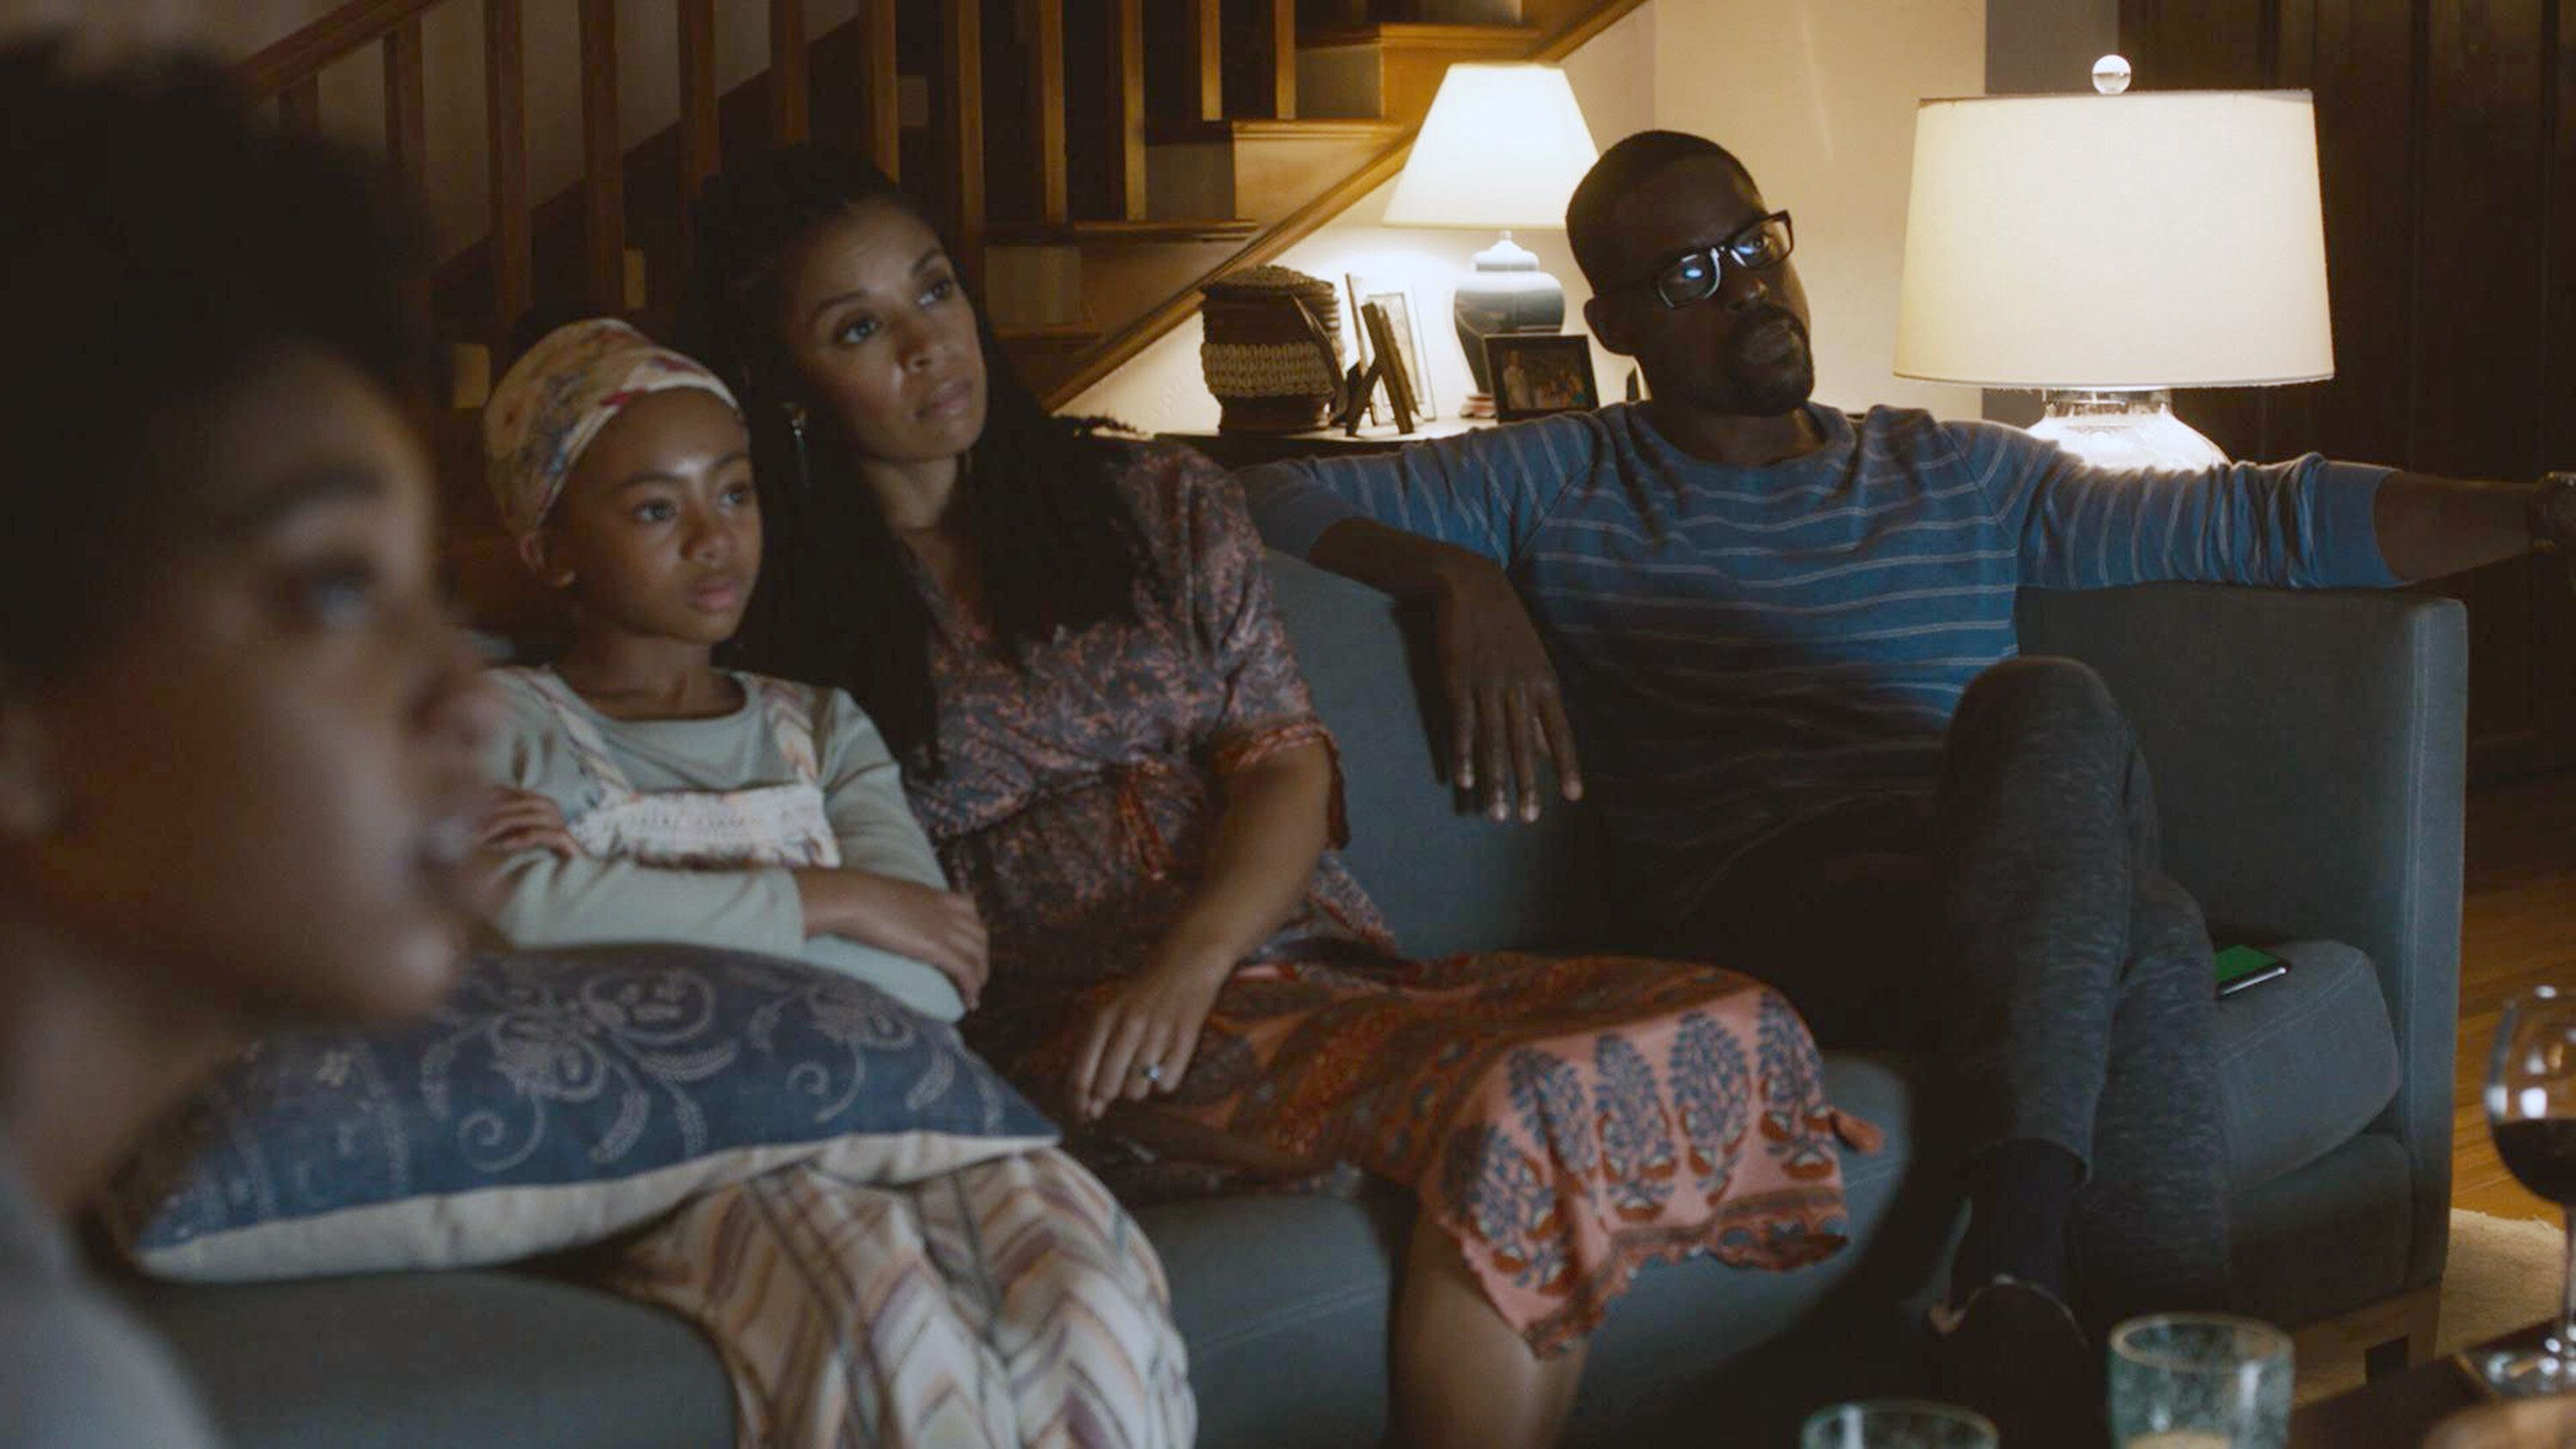 """Eris Baker as Tess, Faithe Herman as Annie, Susan Kelechi Watson as Beth, and Sterling K. Brown as Randall on """"This Is Us."""" T"""